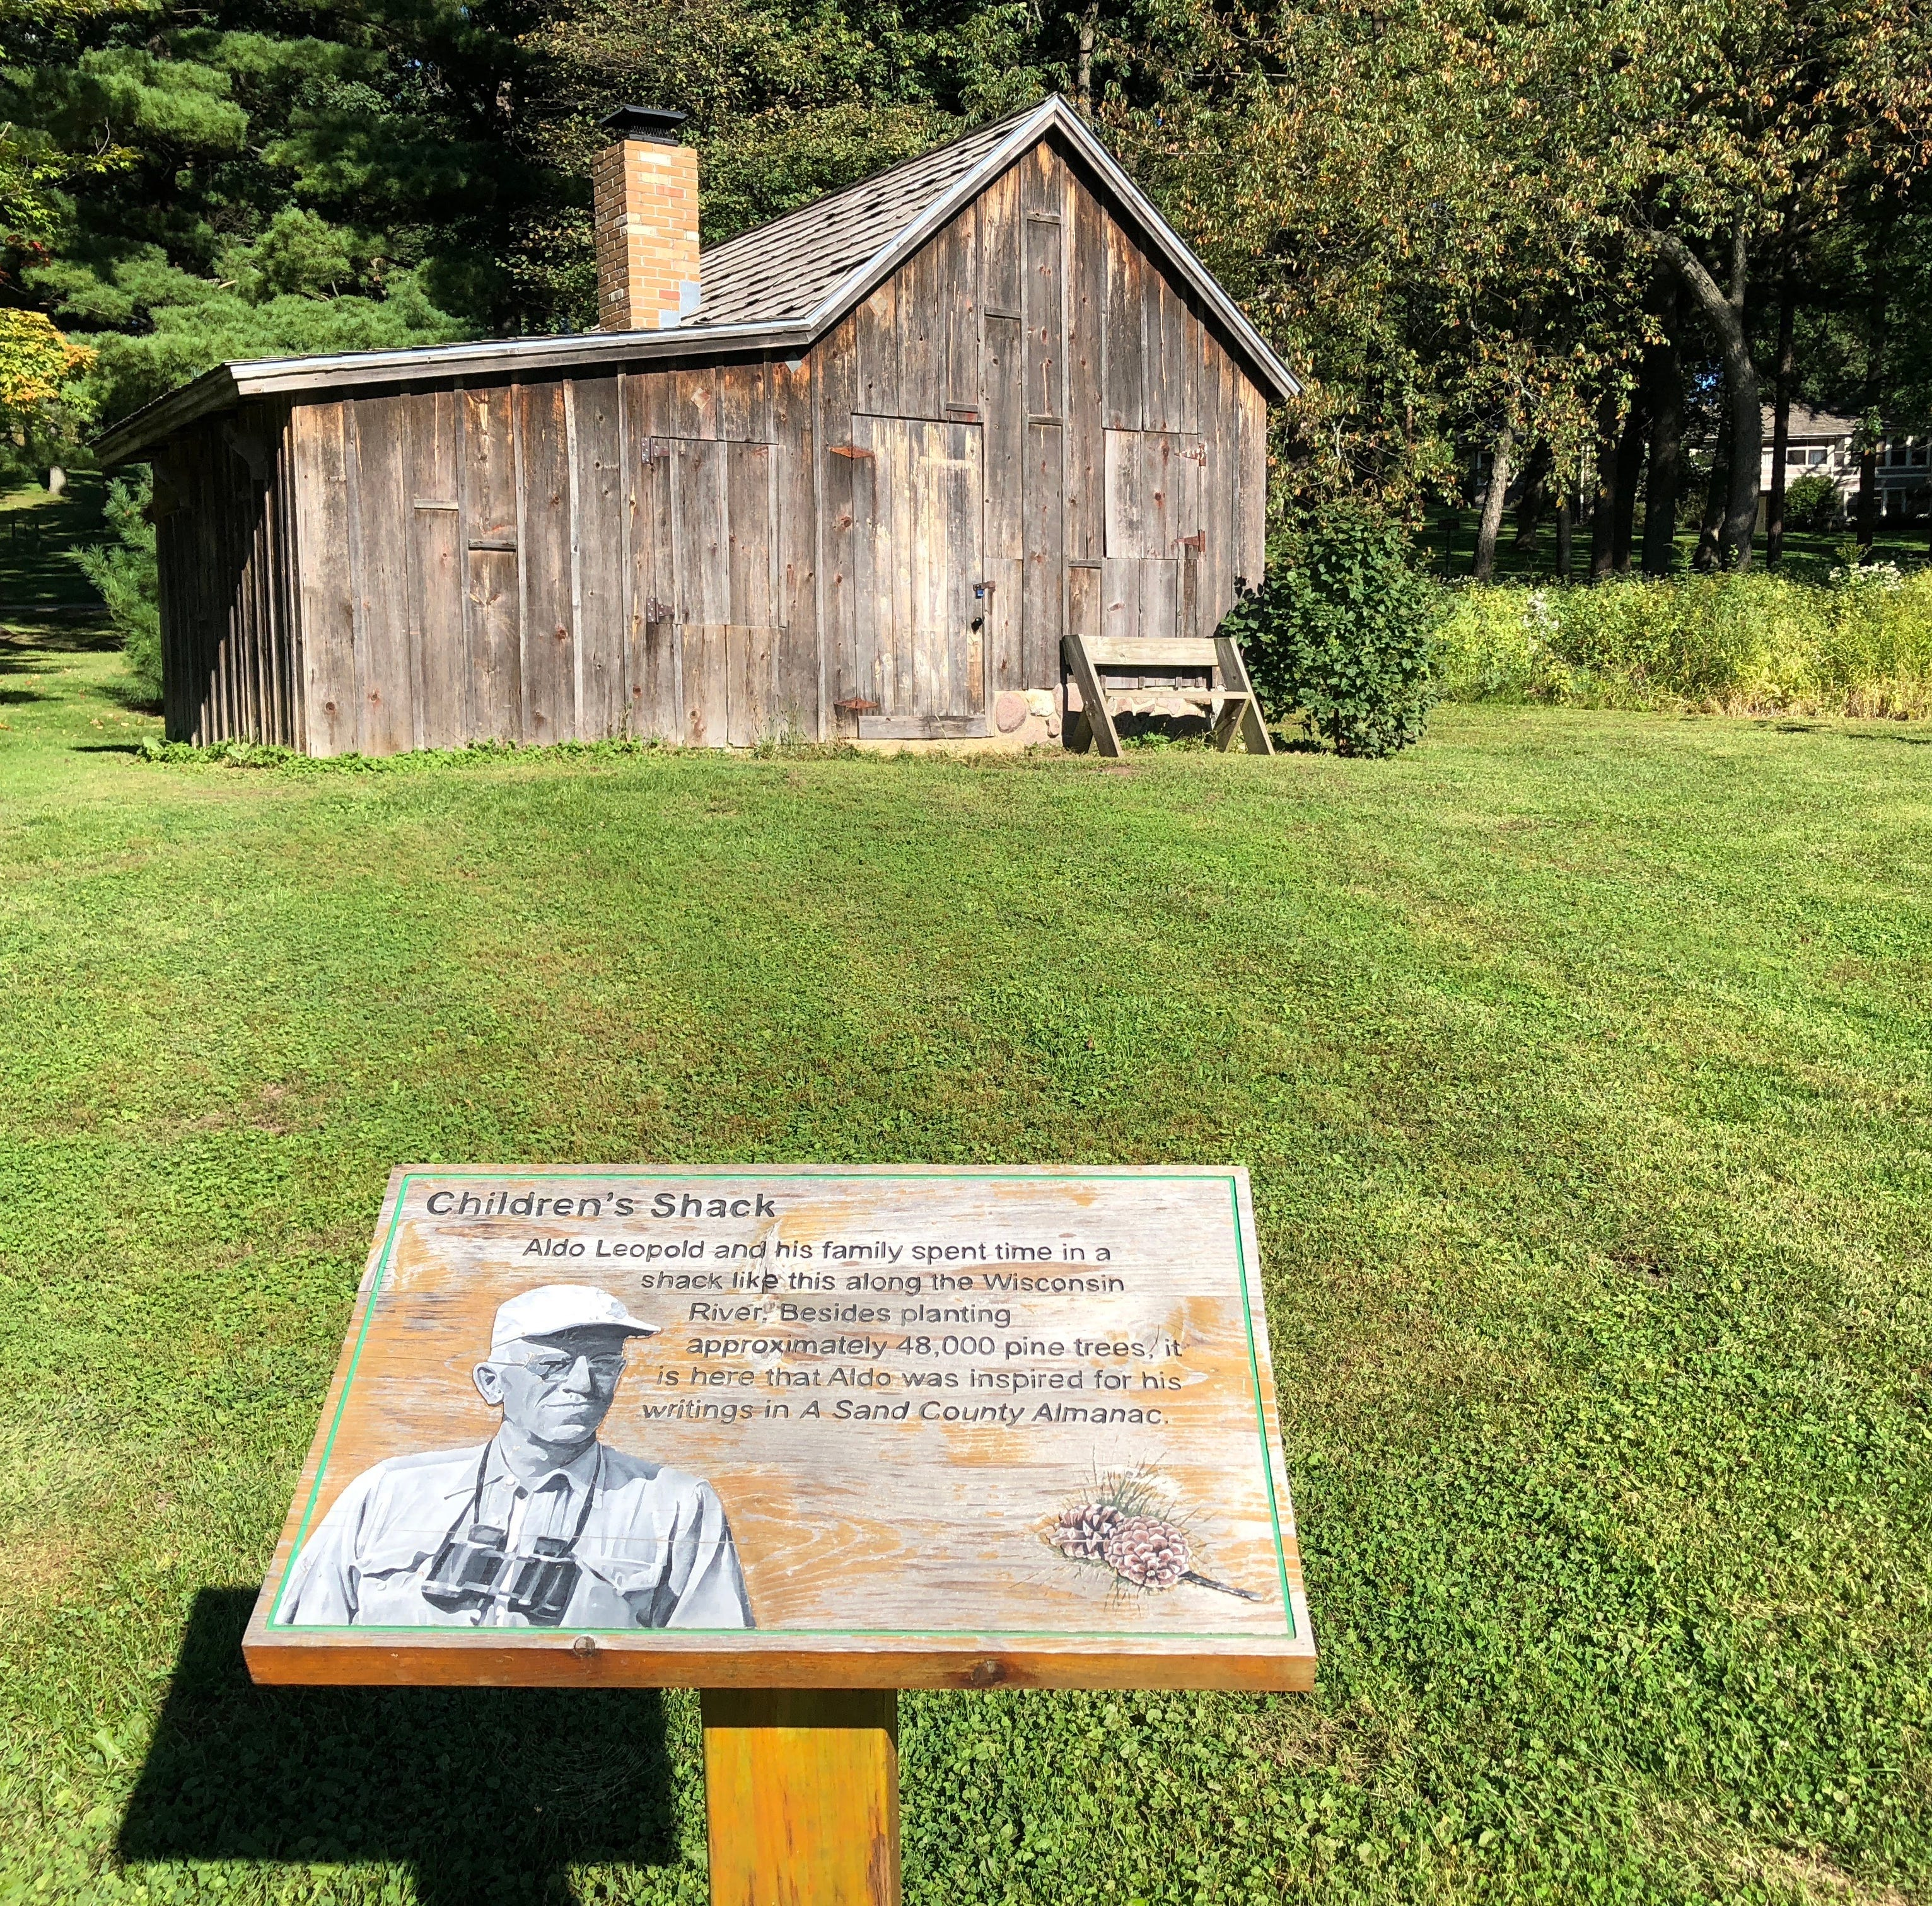 Young people embrace wilderness at Aldo Leopold Nature Center in Monona